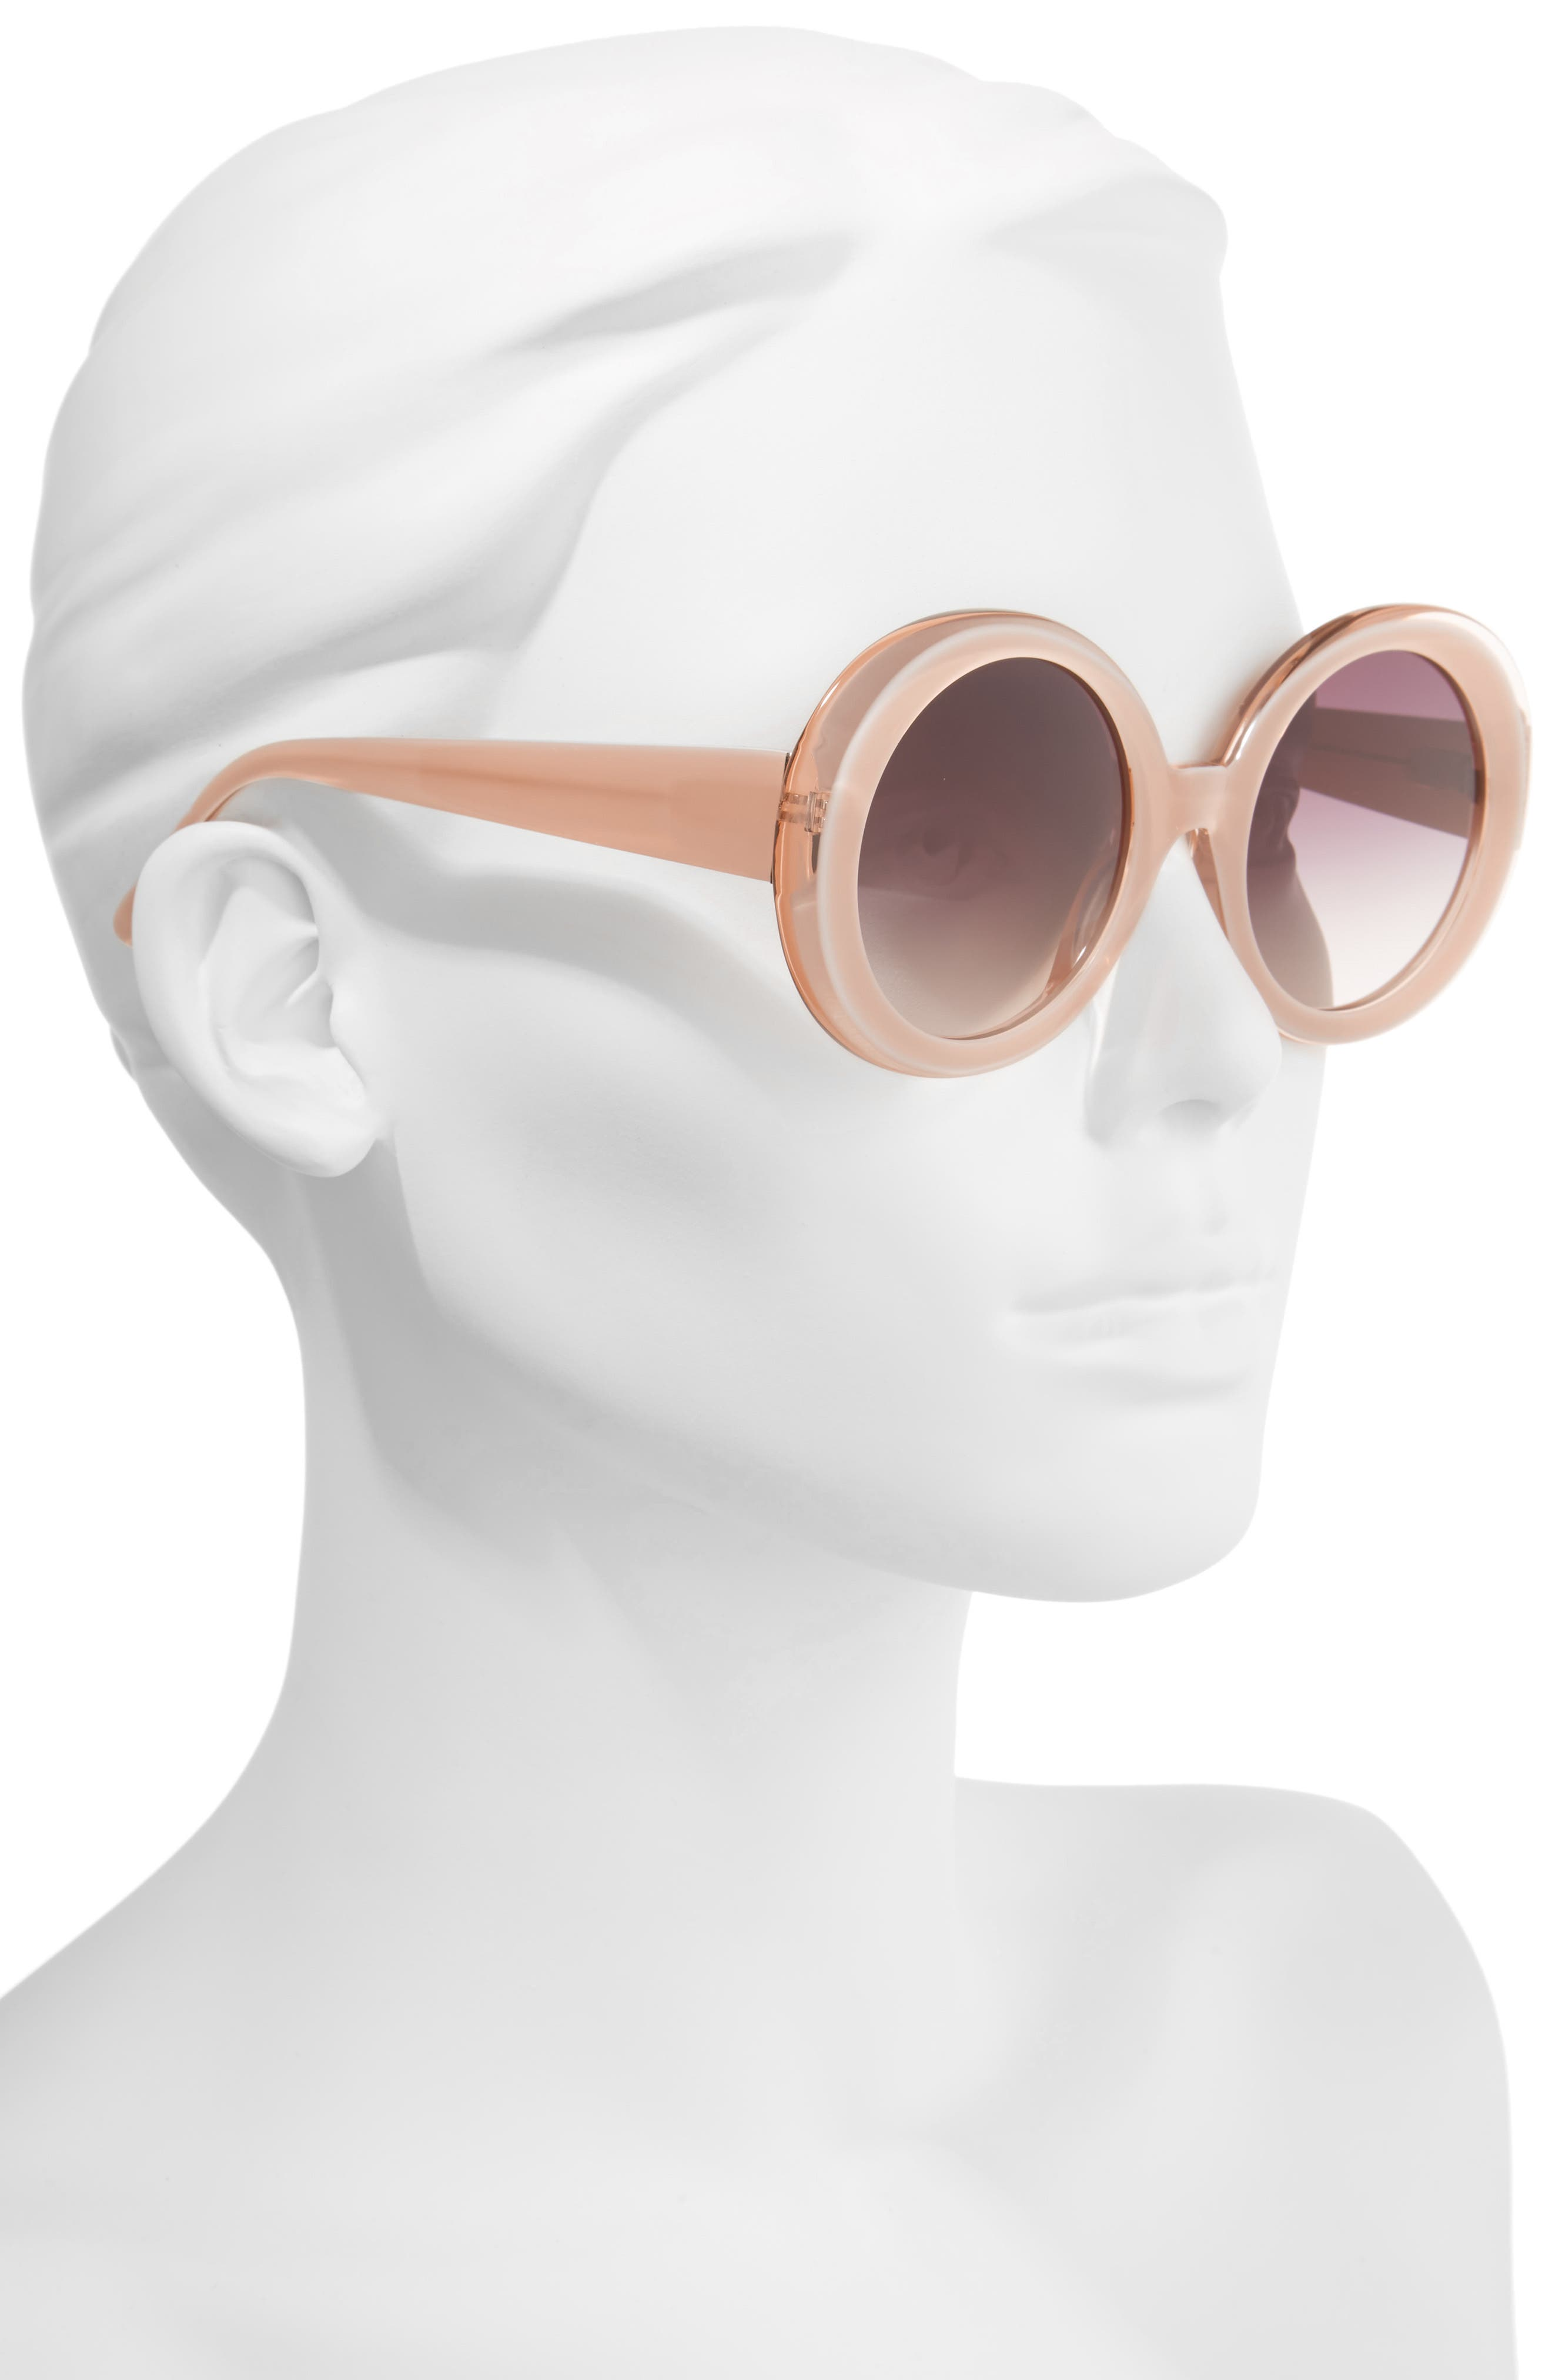 Mulholland 52mm Round Gradient Sunglasses,                             Alternate thumbnail 2, color,                             Blush